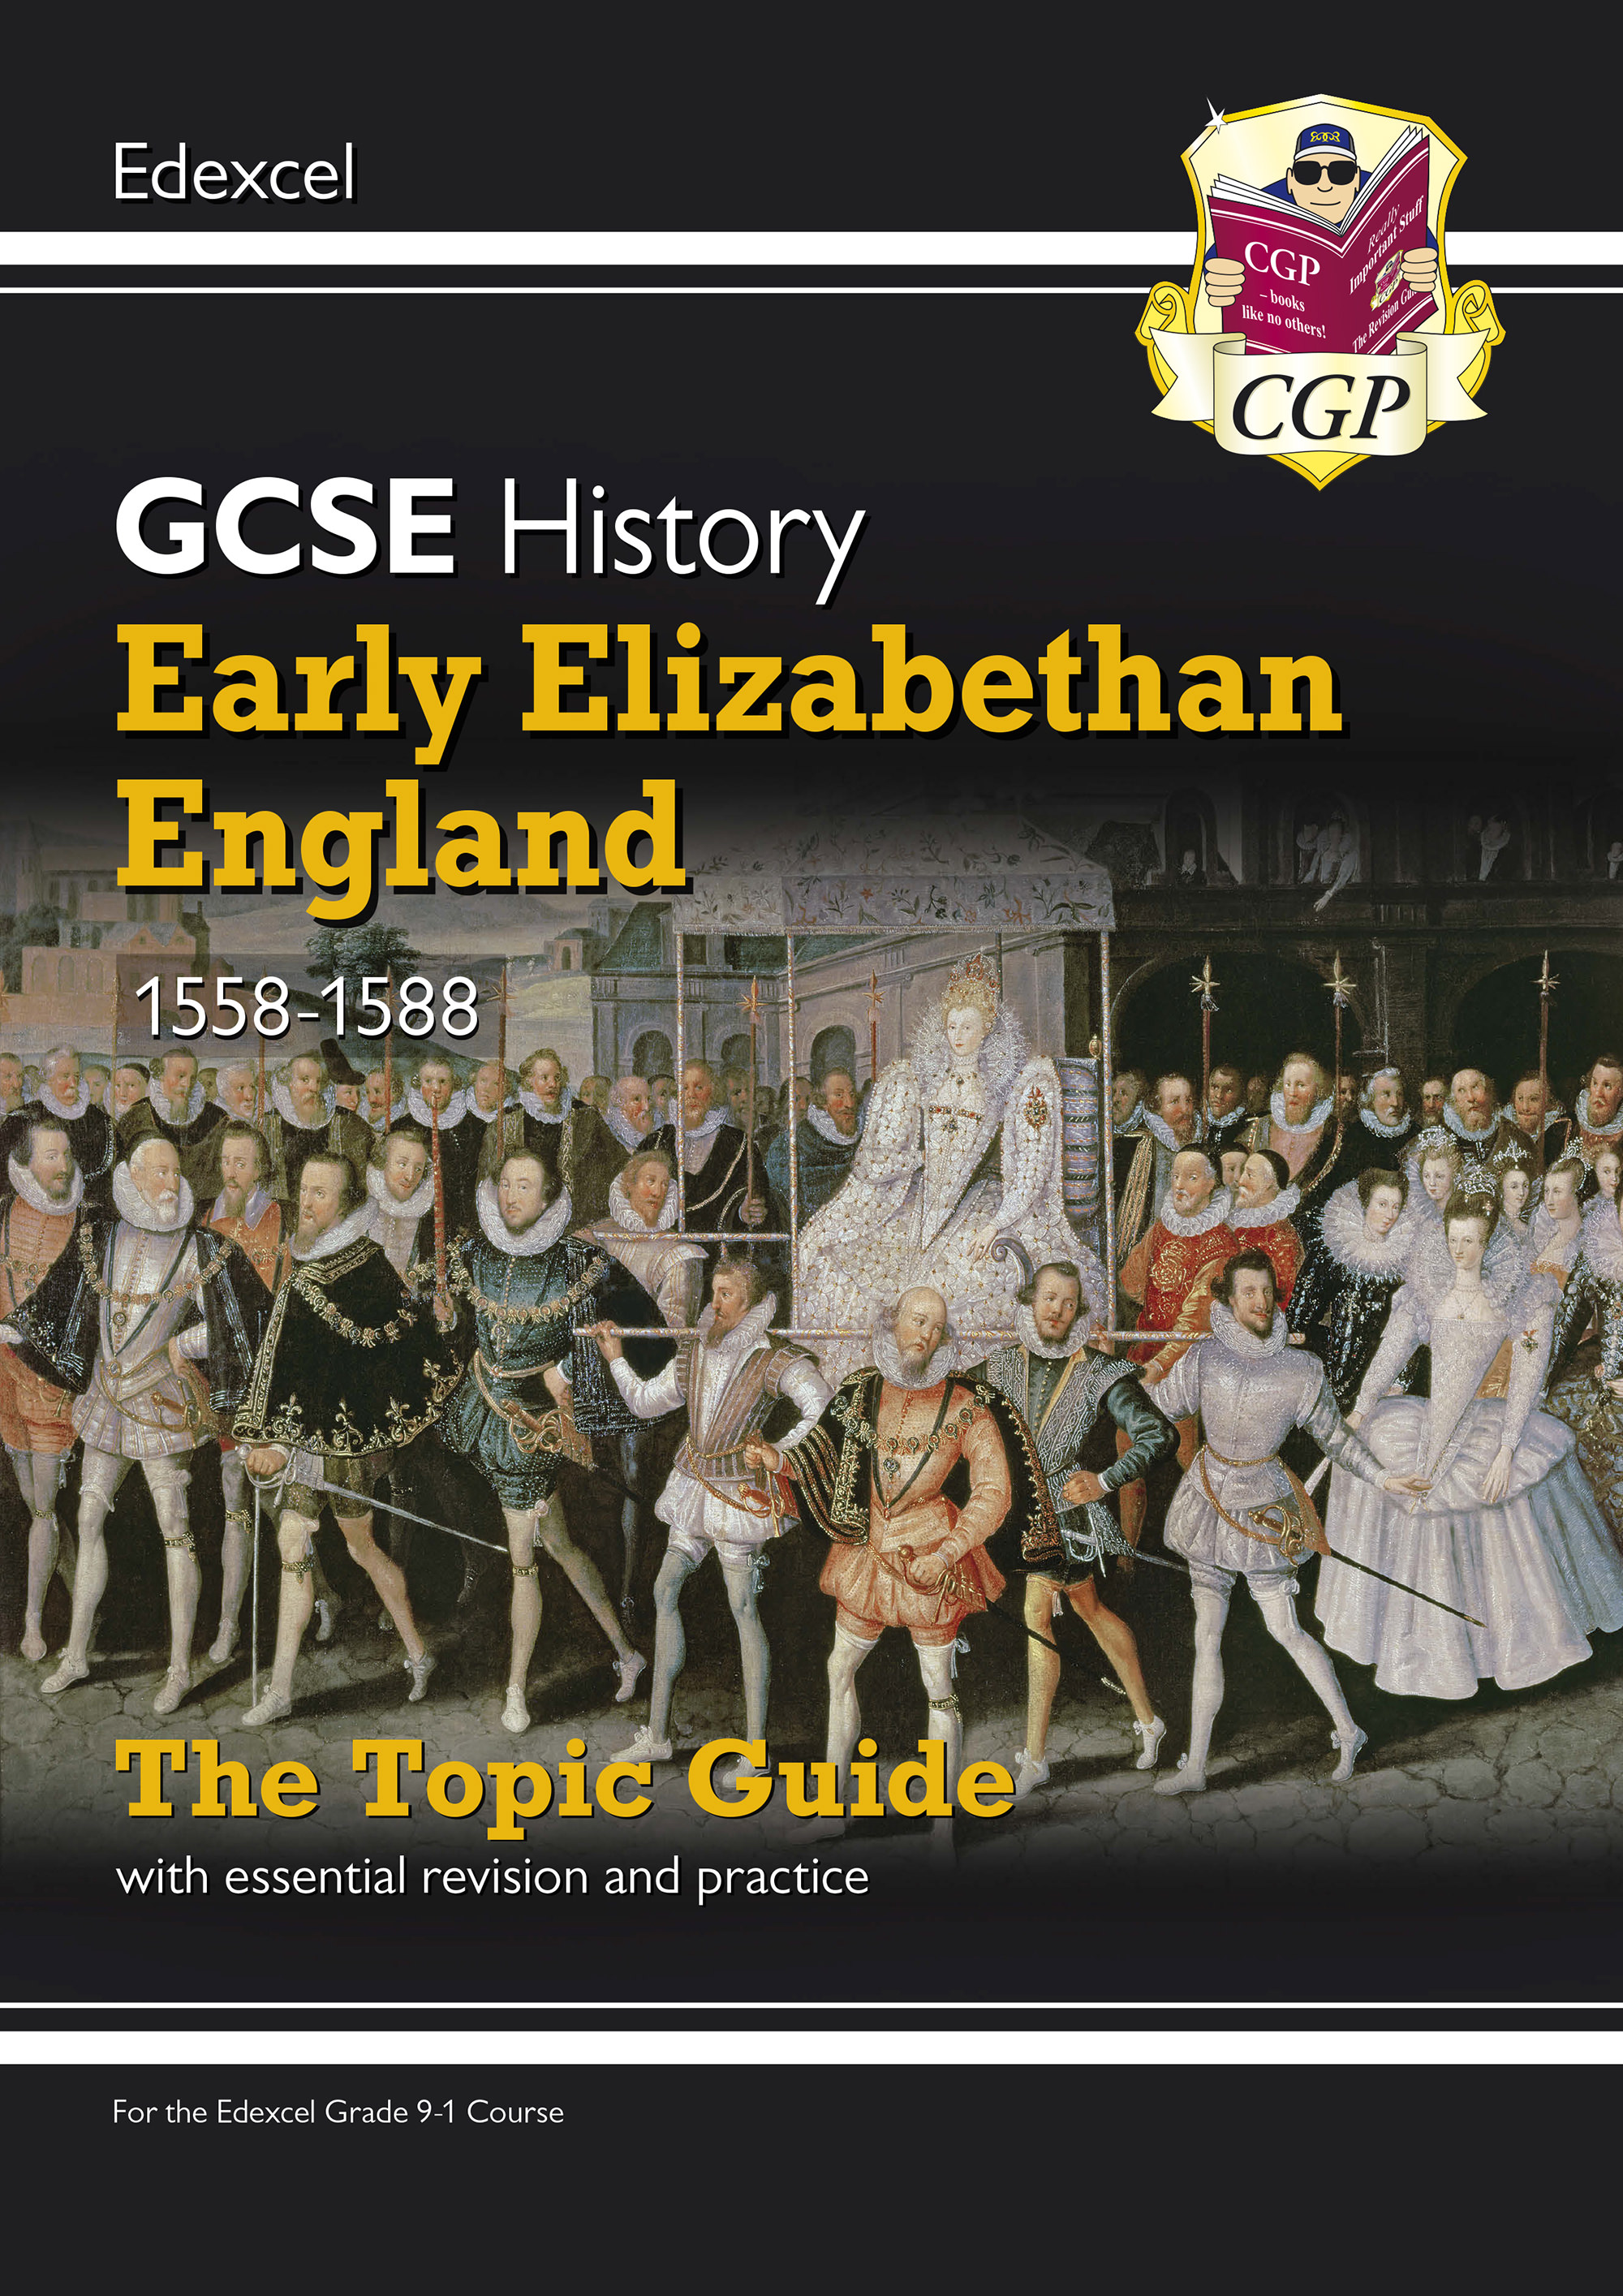 HEEAO41D - New Grade 9-1 GCSE History Edexcel Topic Guide - Early Elizabethan England, 1558-88 (Onli